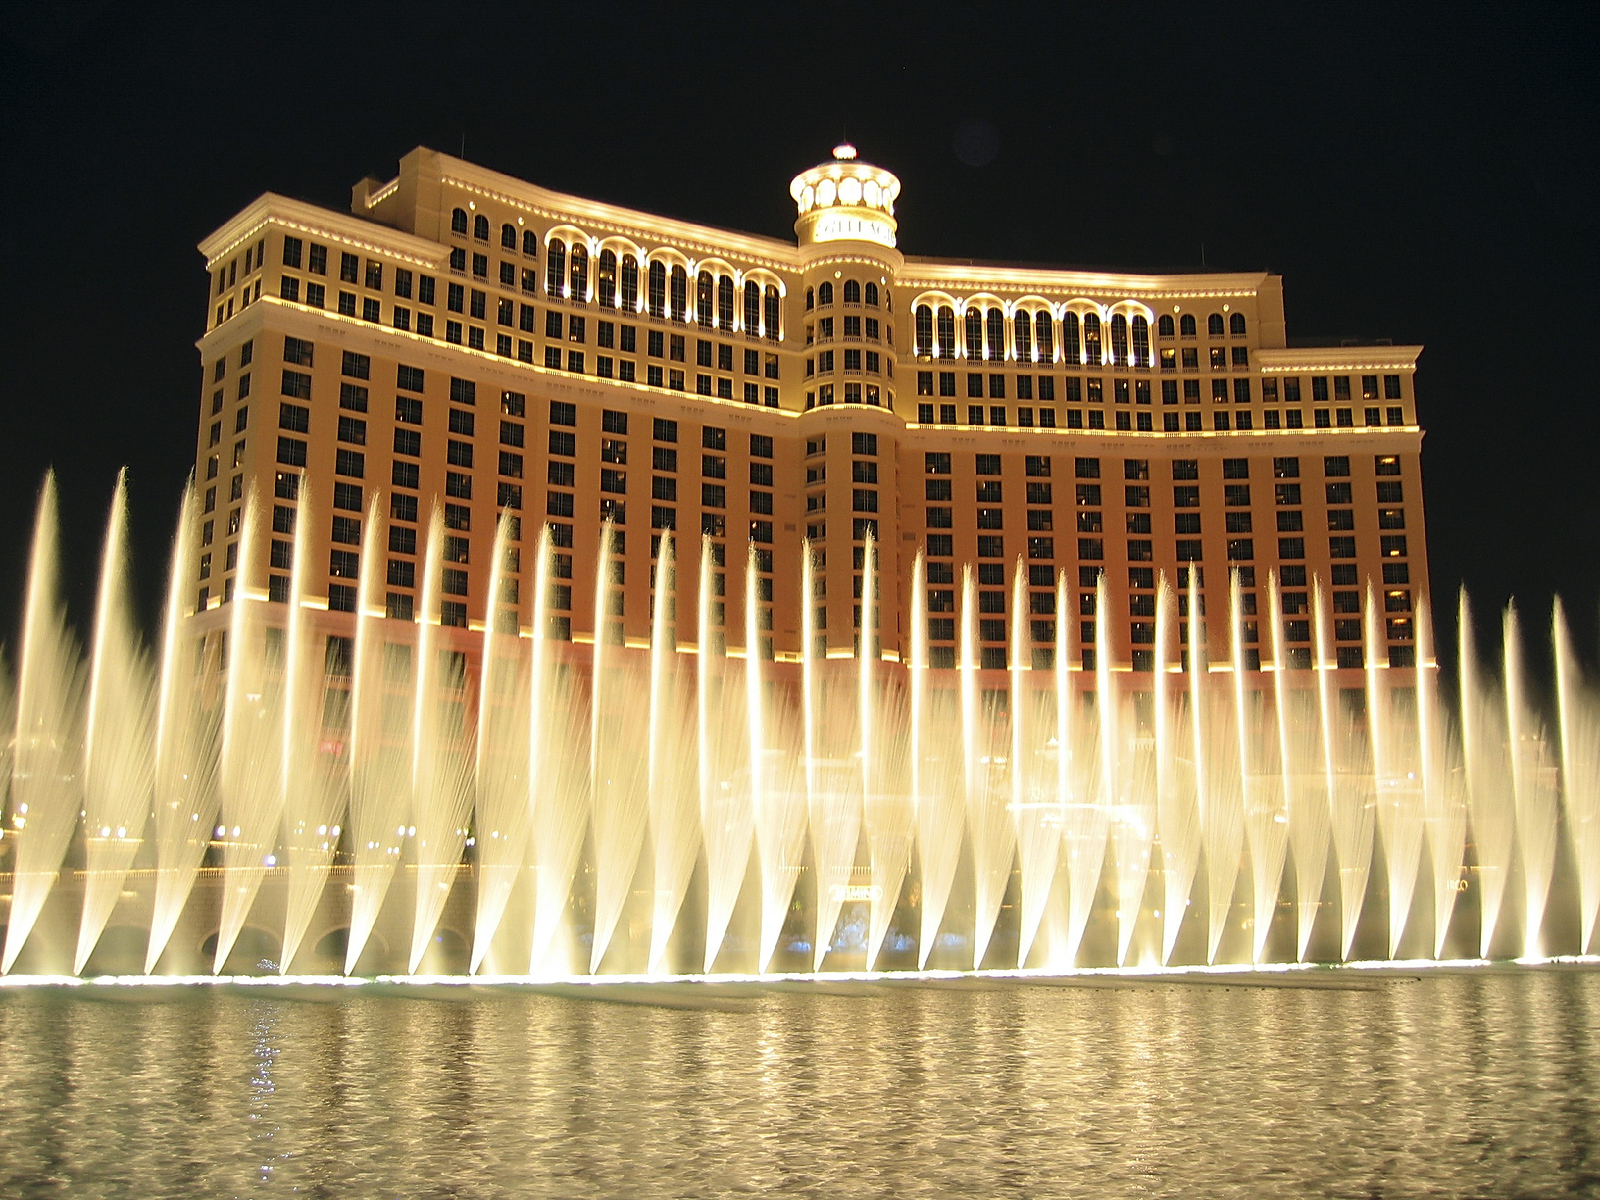 Bellagio Hotel-Las Vegas-Nevada-travel healthcare jobs march 25